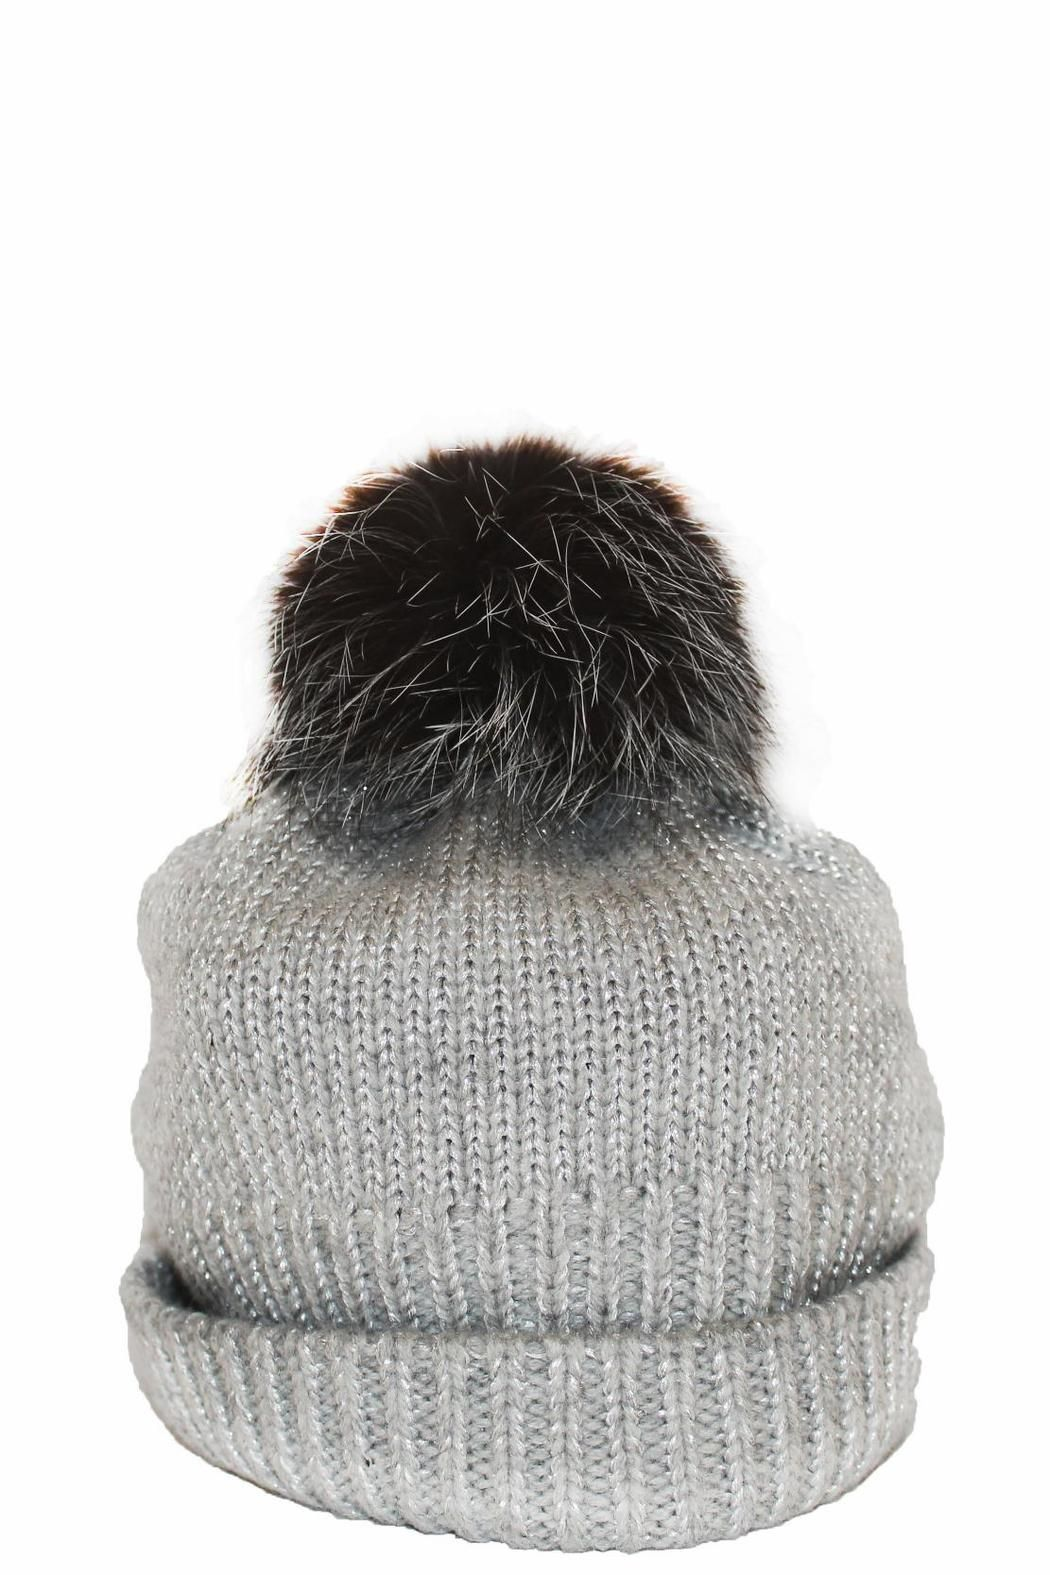 87ab23bc3 Mitchies Matching Silver Knit Hat | Boutique Highlights | Knitted ...